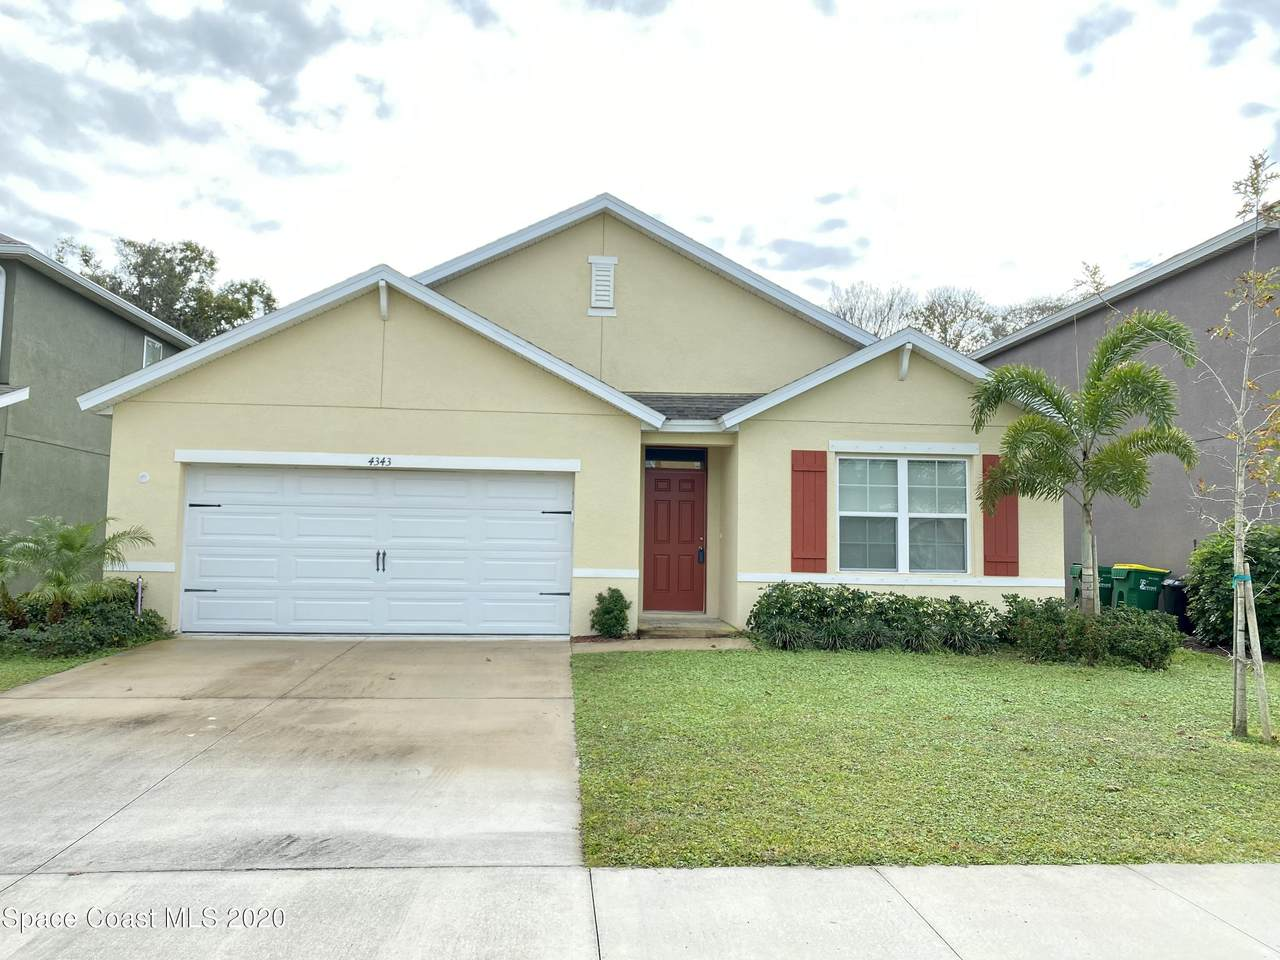 4343 Starling Place - Photo 1